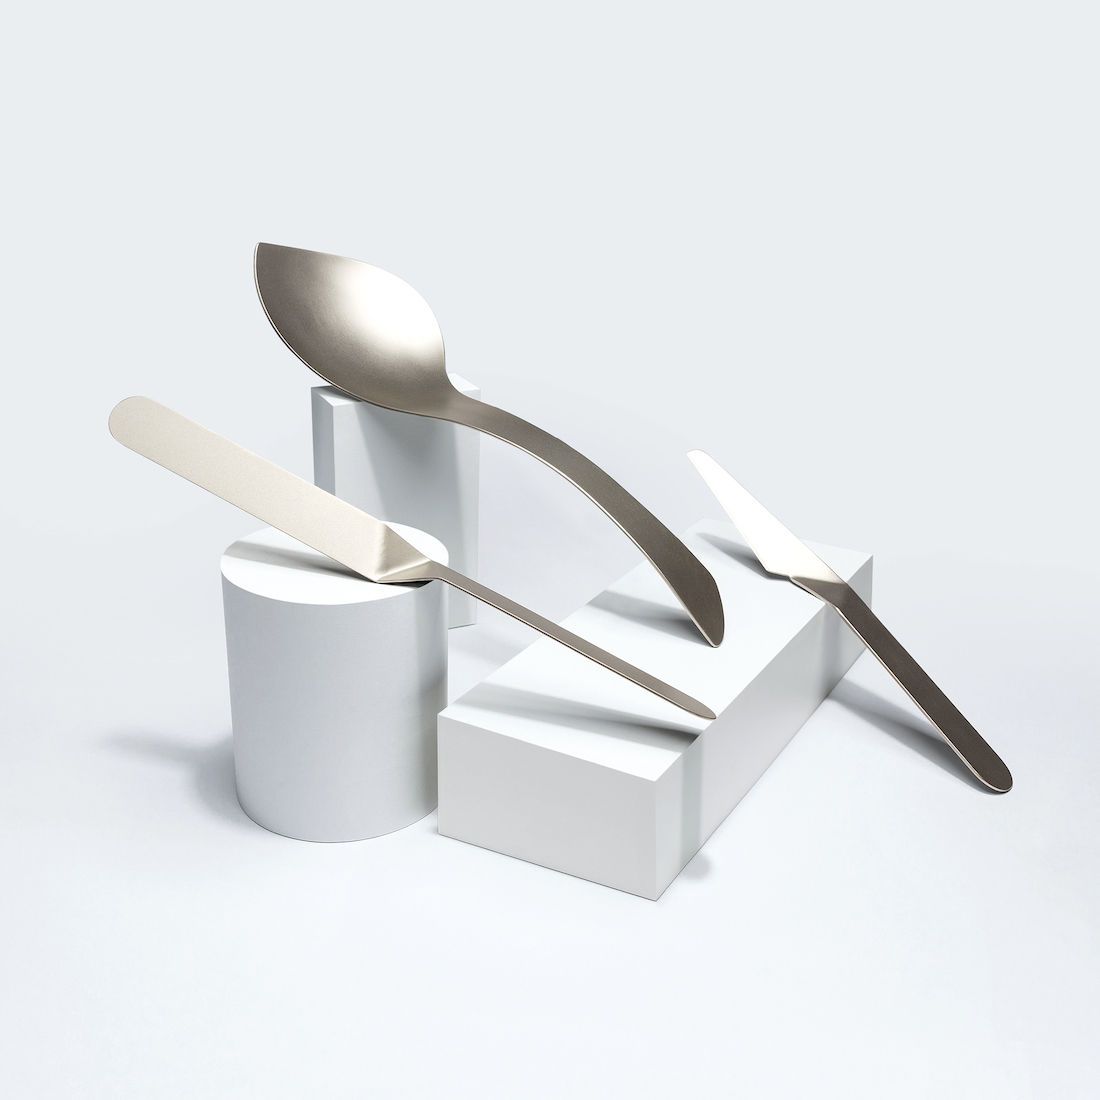 Tableware by Alison Jackson